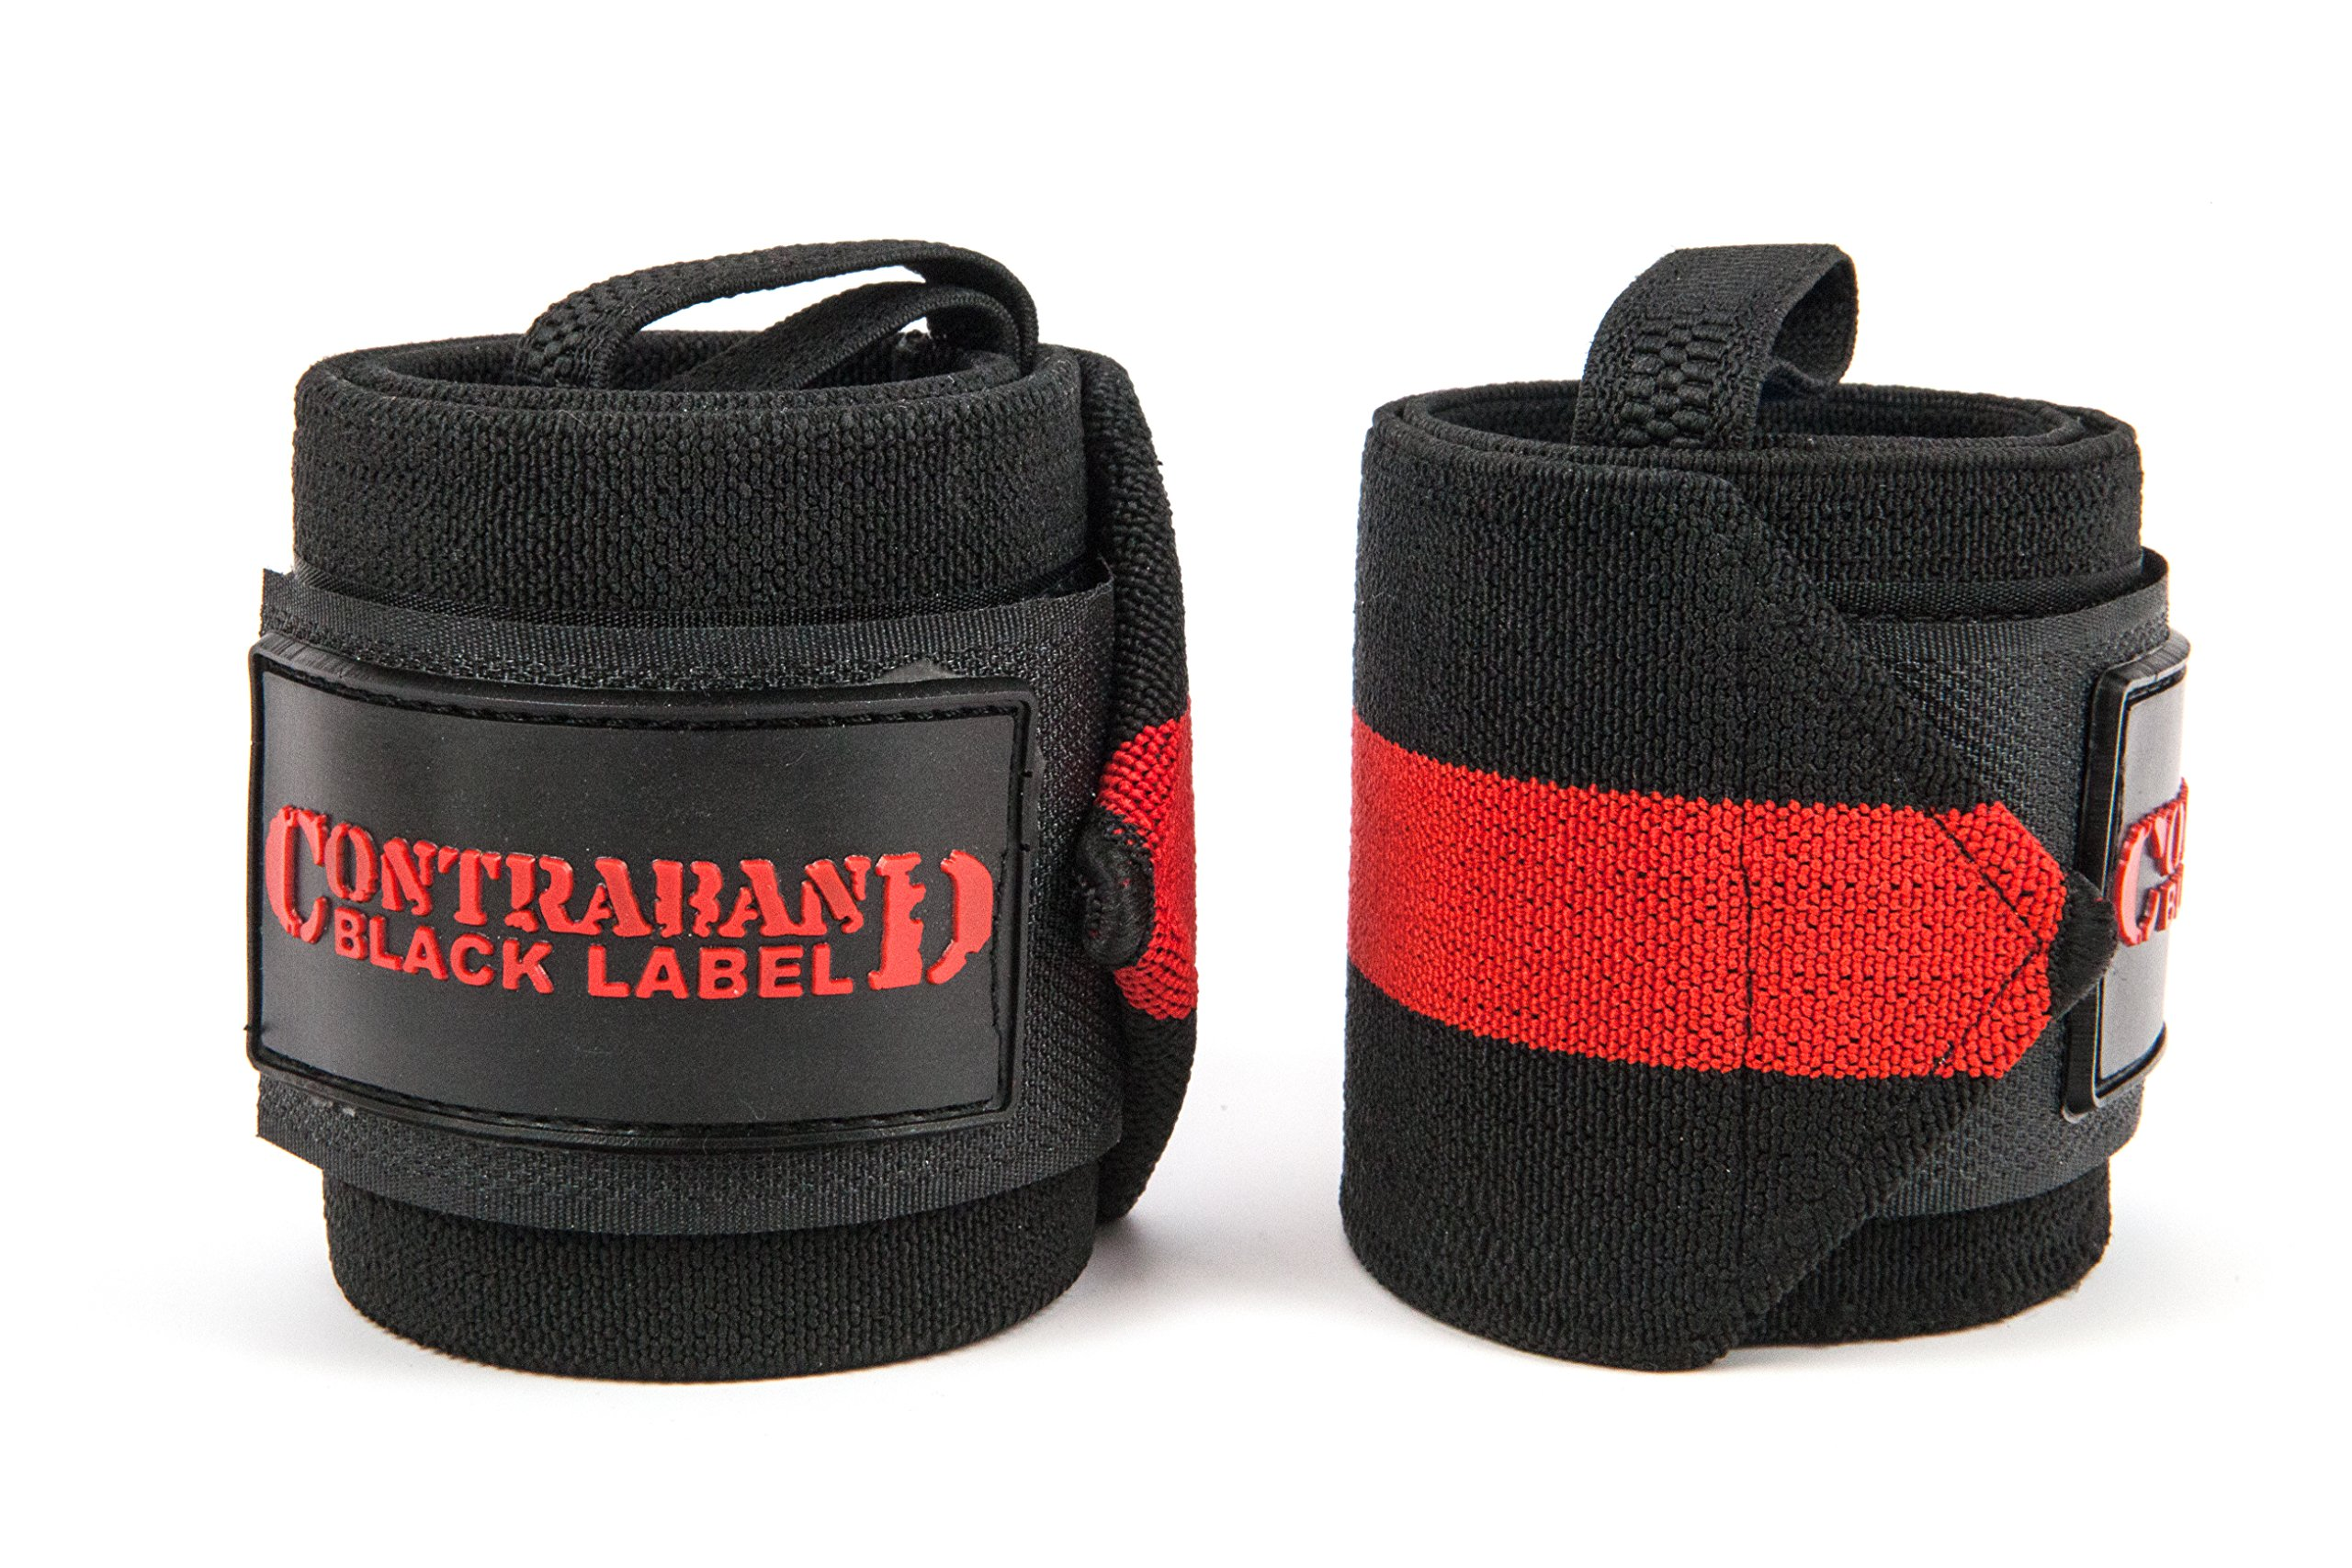 Contraband Black Label 1001 Weight Lifting Wrist Wraps w/Thumb Loops (Pair) - Competition Grade Wrist Support USPA Approved for Powerlifting, Bodybuilding, Strongman (18in, Extreme (RED))